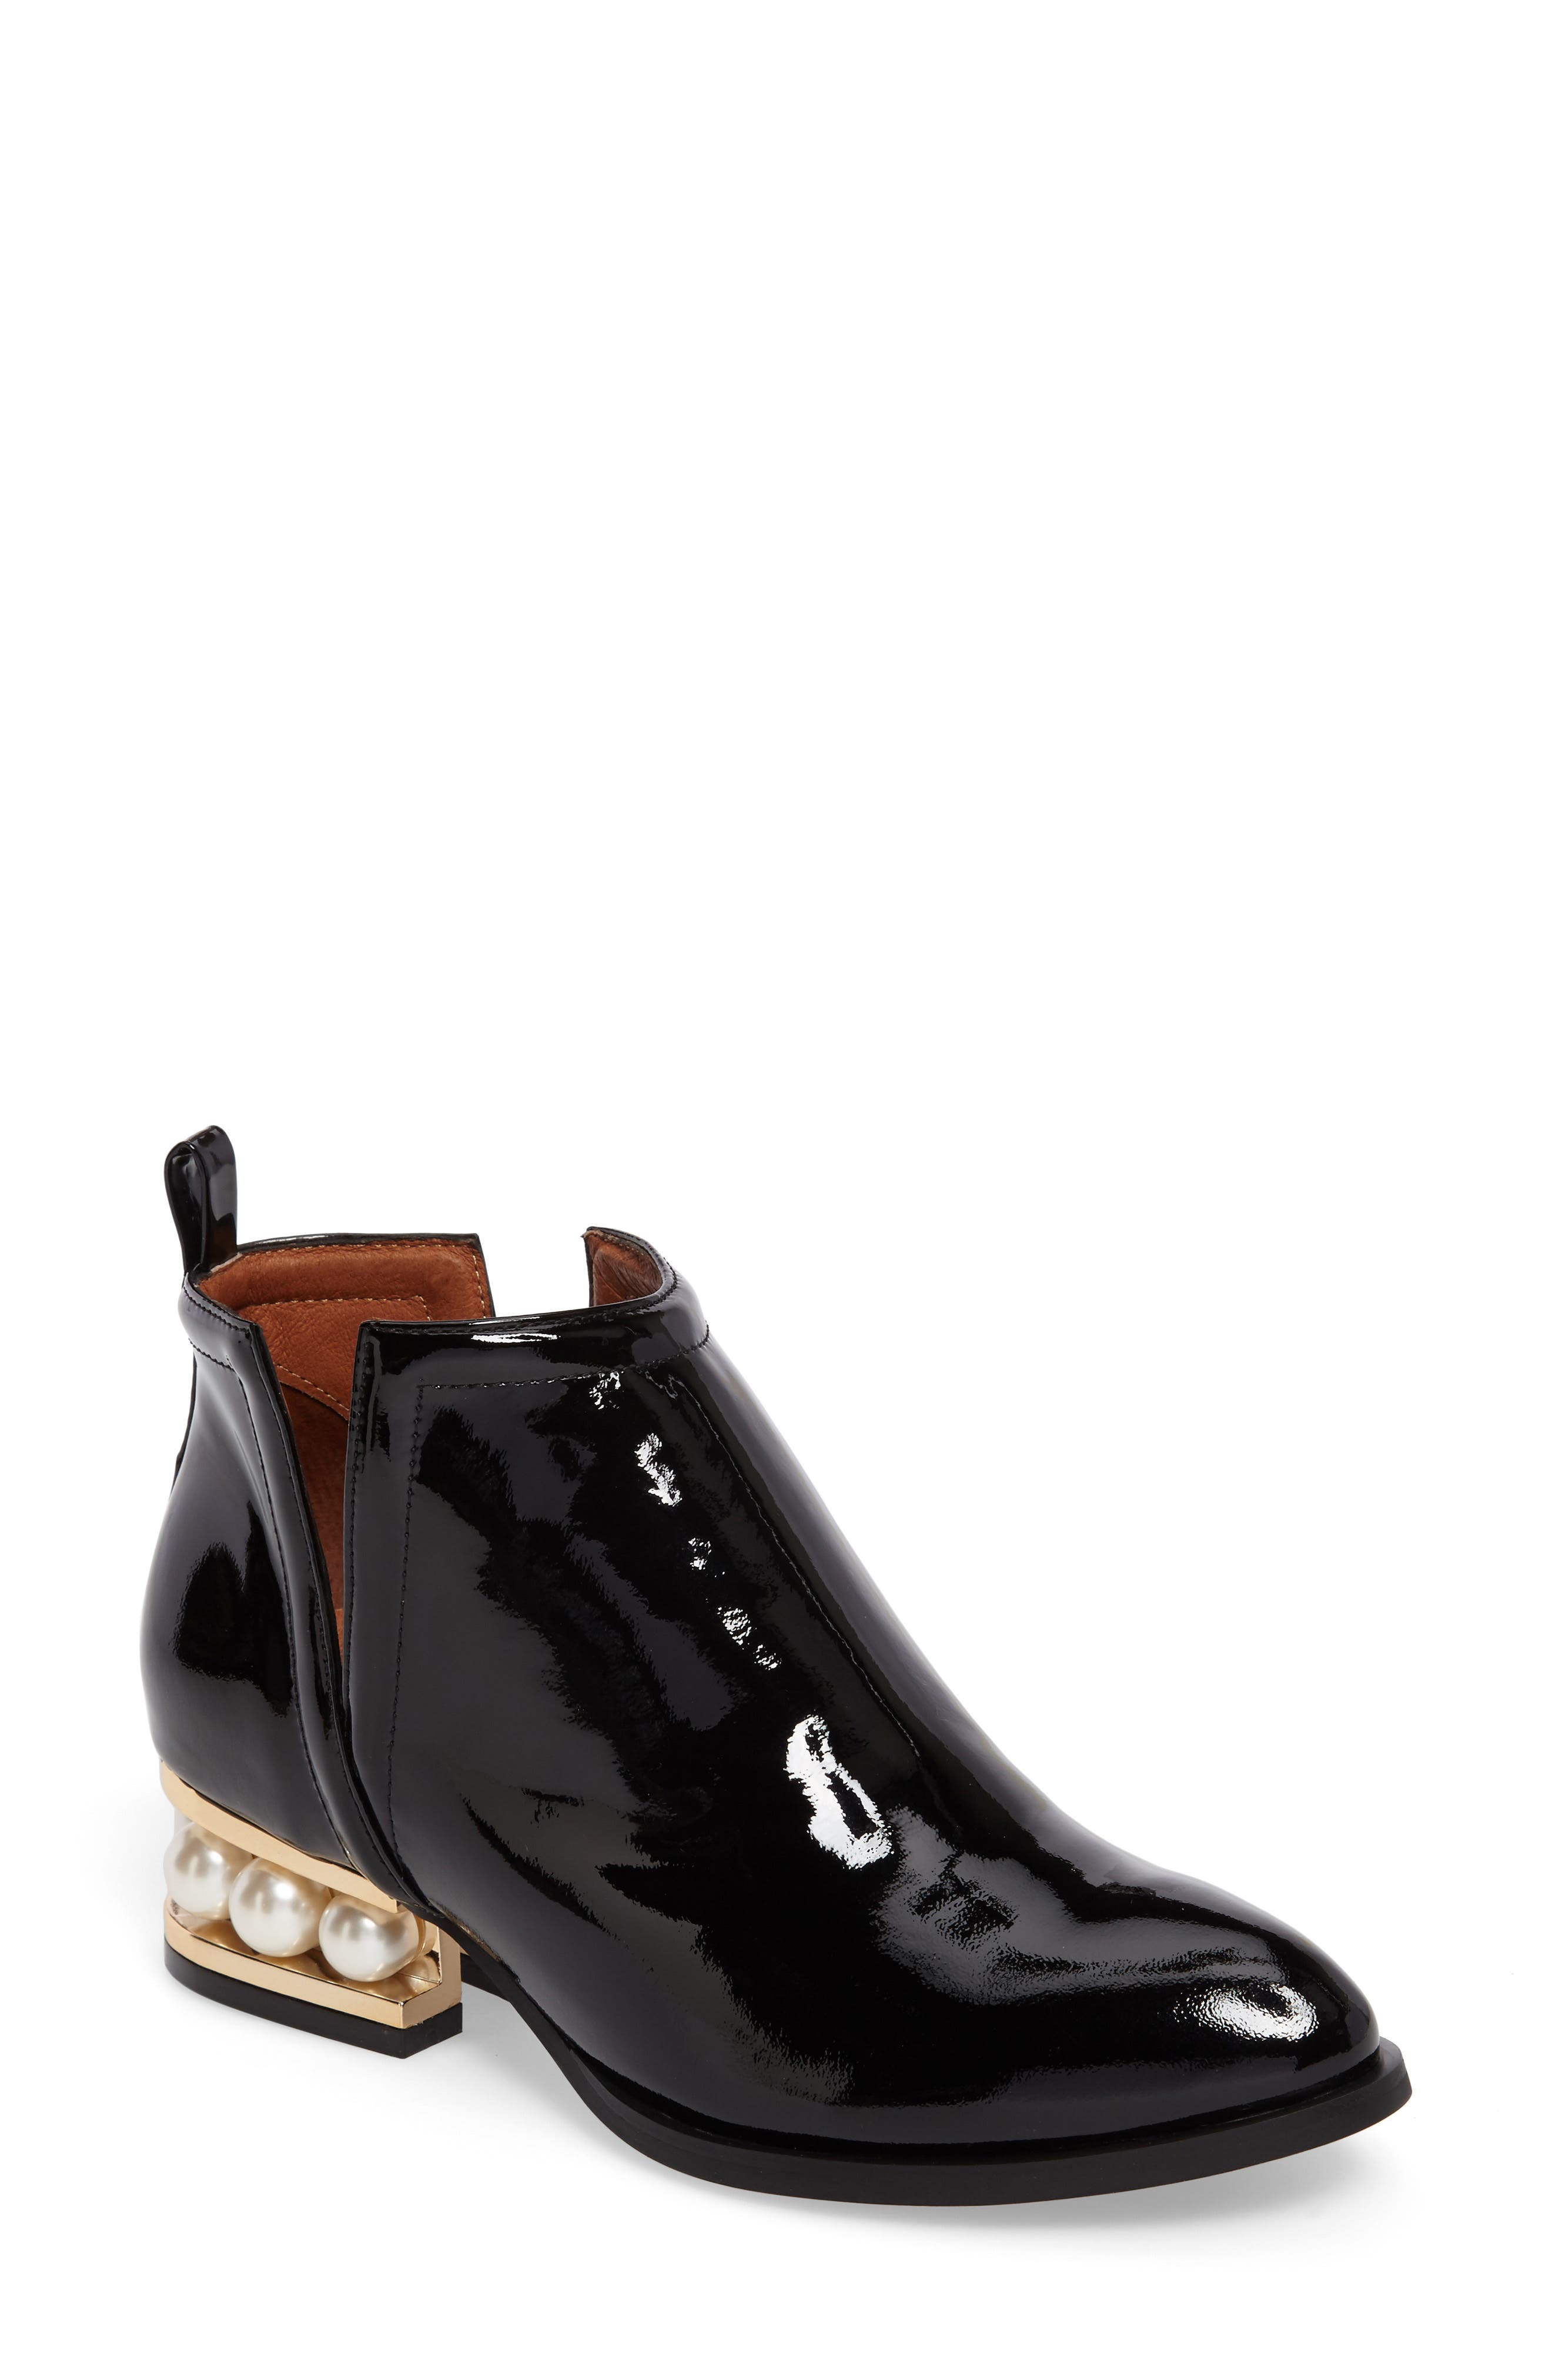 Musklo Split-Shaft Bootie,                         Main,                         color, Black/ Gold Patent Leather